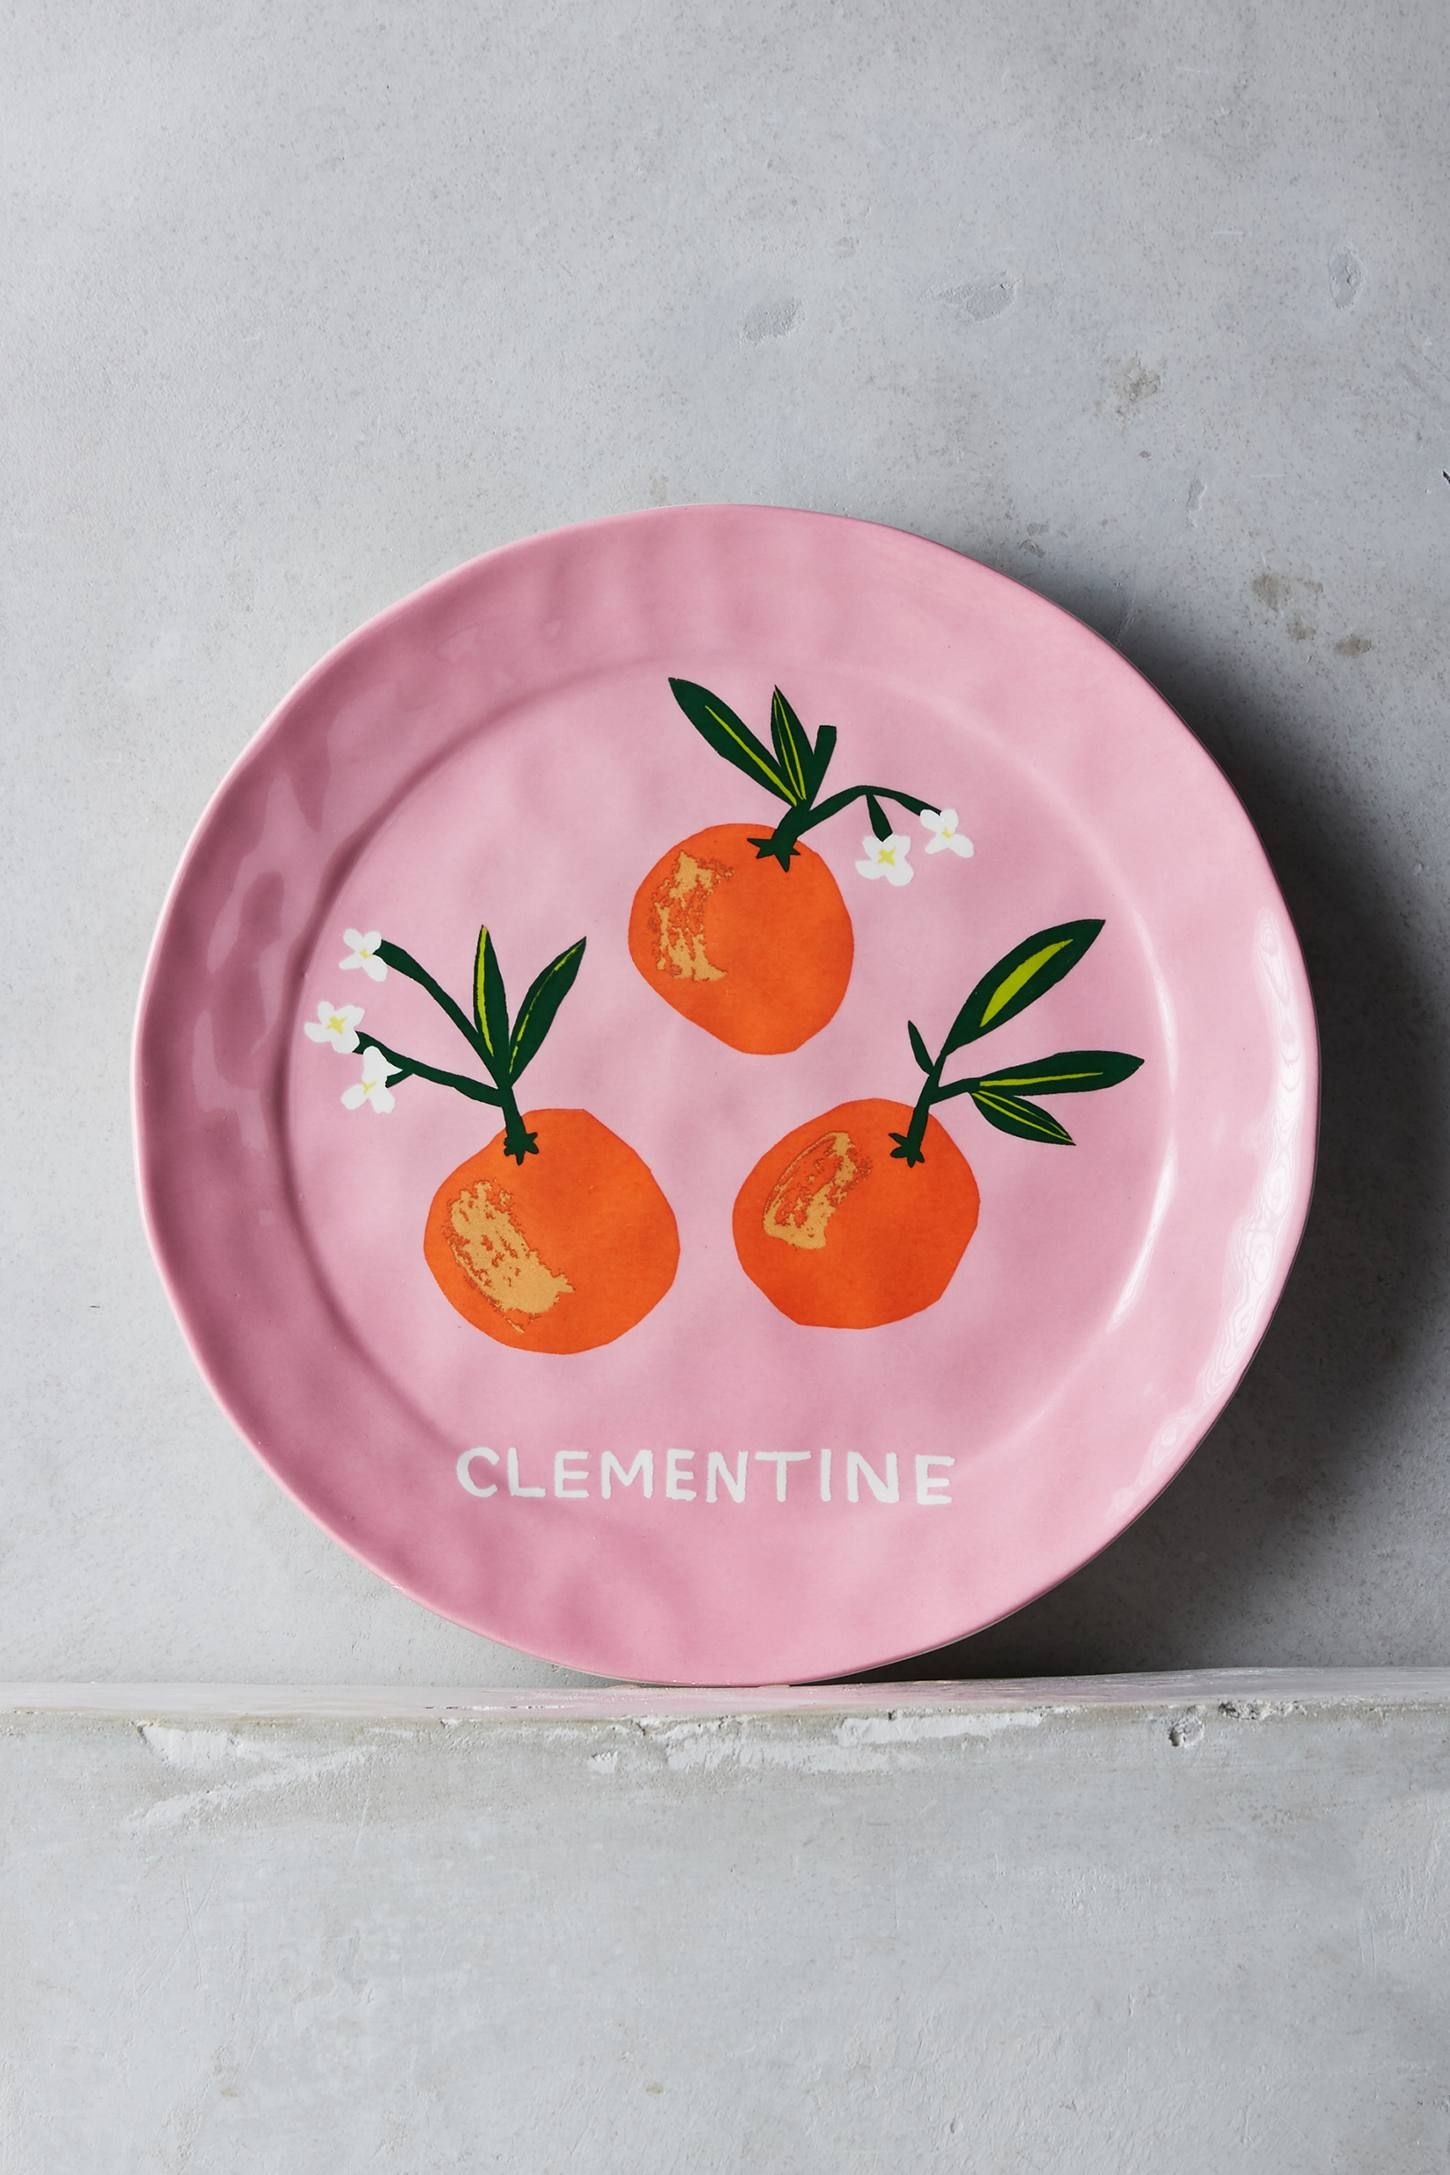 Clementine plate by Danielle Kroll